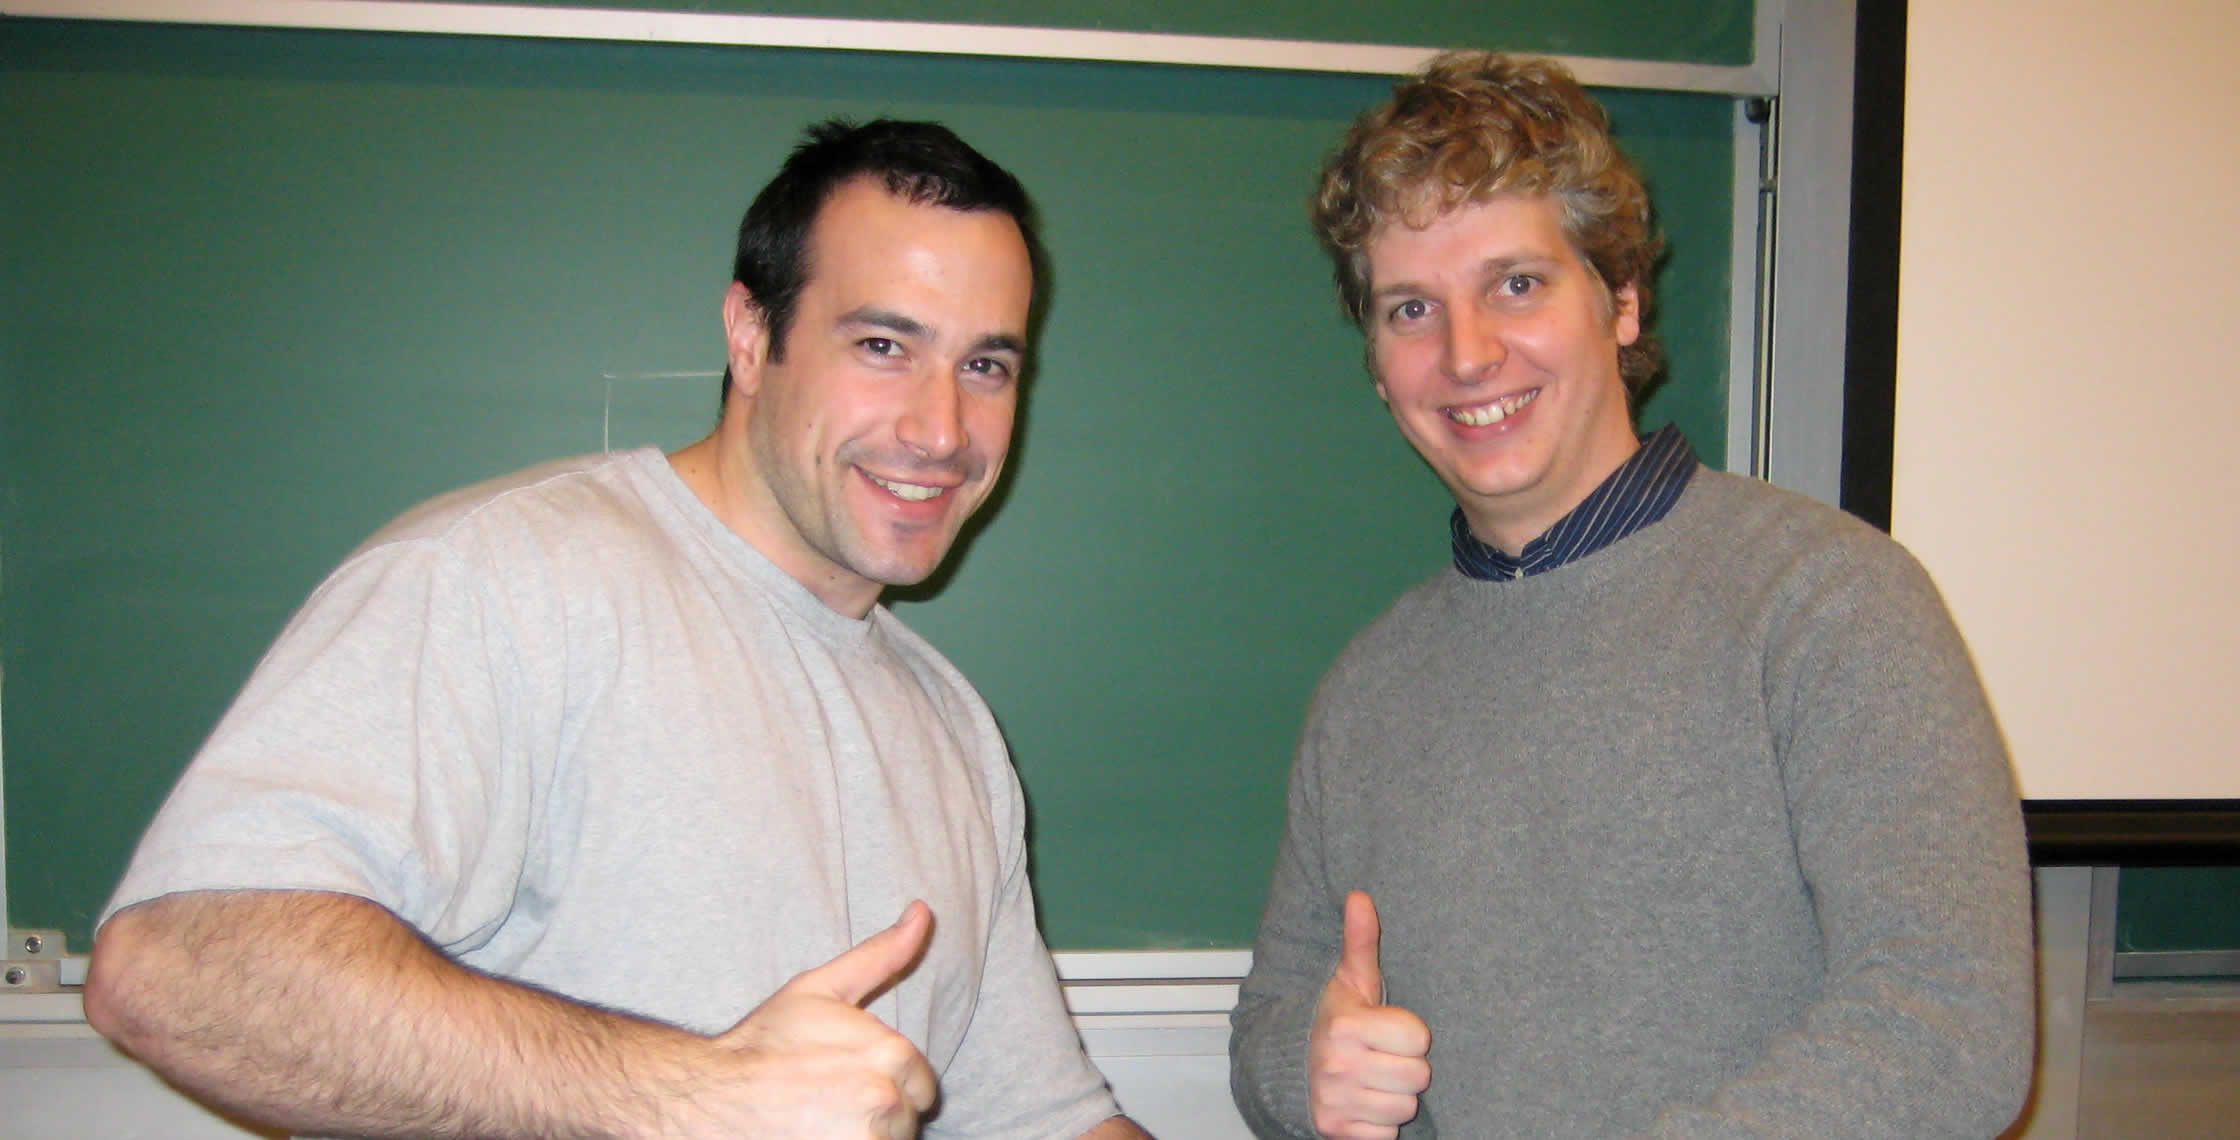 Ben Nadel at the New York ColdFusion User Group (Mar. 2008) with: Pete Freitag